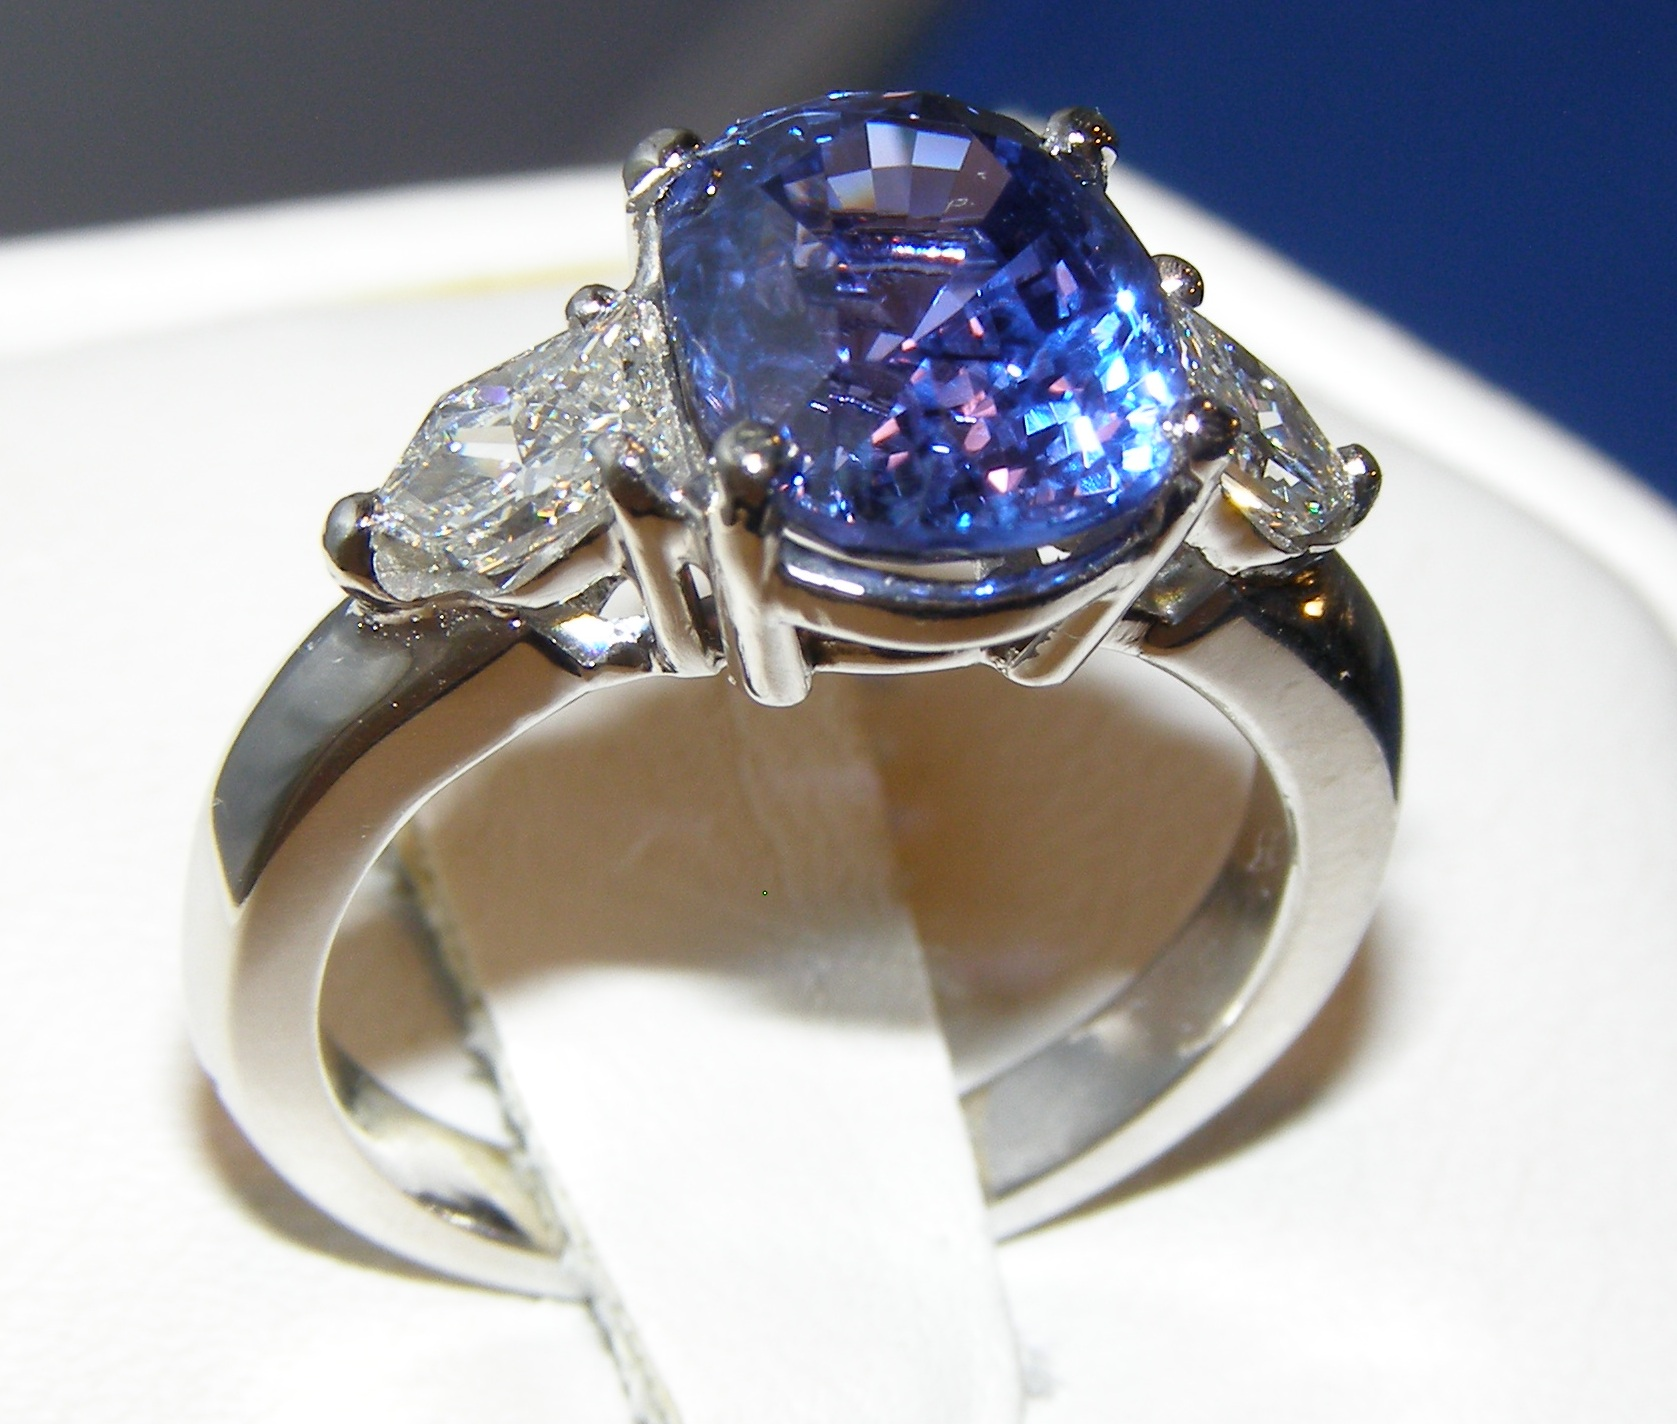 AAA+ UNHEATED AGL Certified Sapphire Diamond Platinum Ring 5.2 ctw